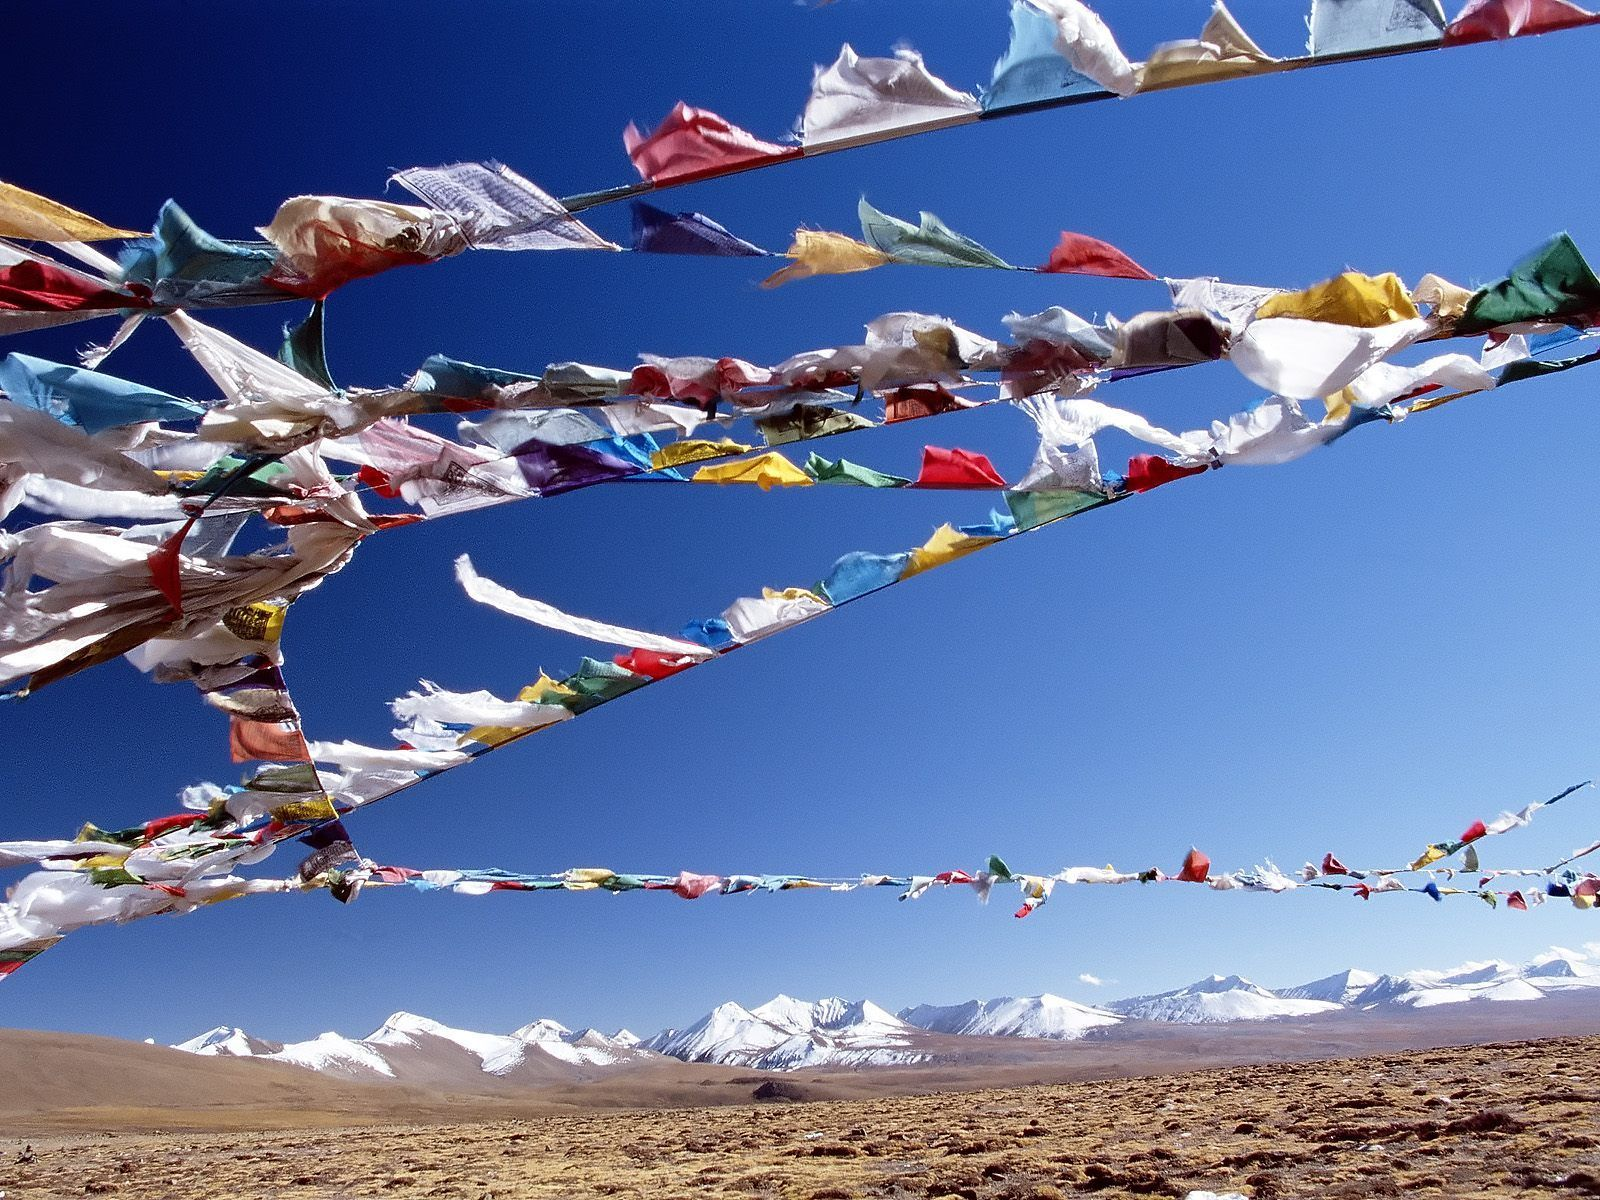 Tibetian Prayer Flags, where the values and ideas that the flags represent are both beautiful and as inspiring as a collection of old candles in any church.